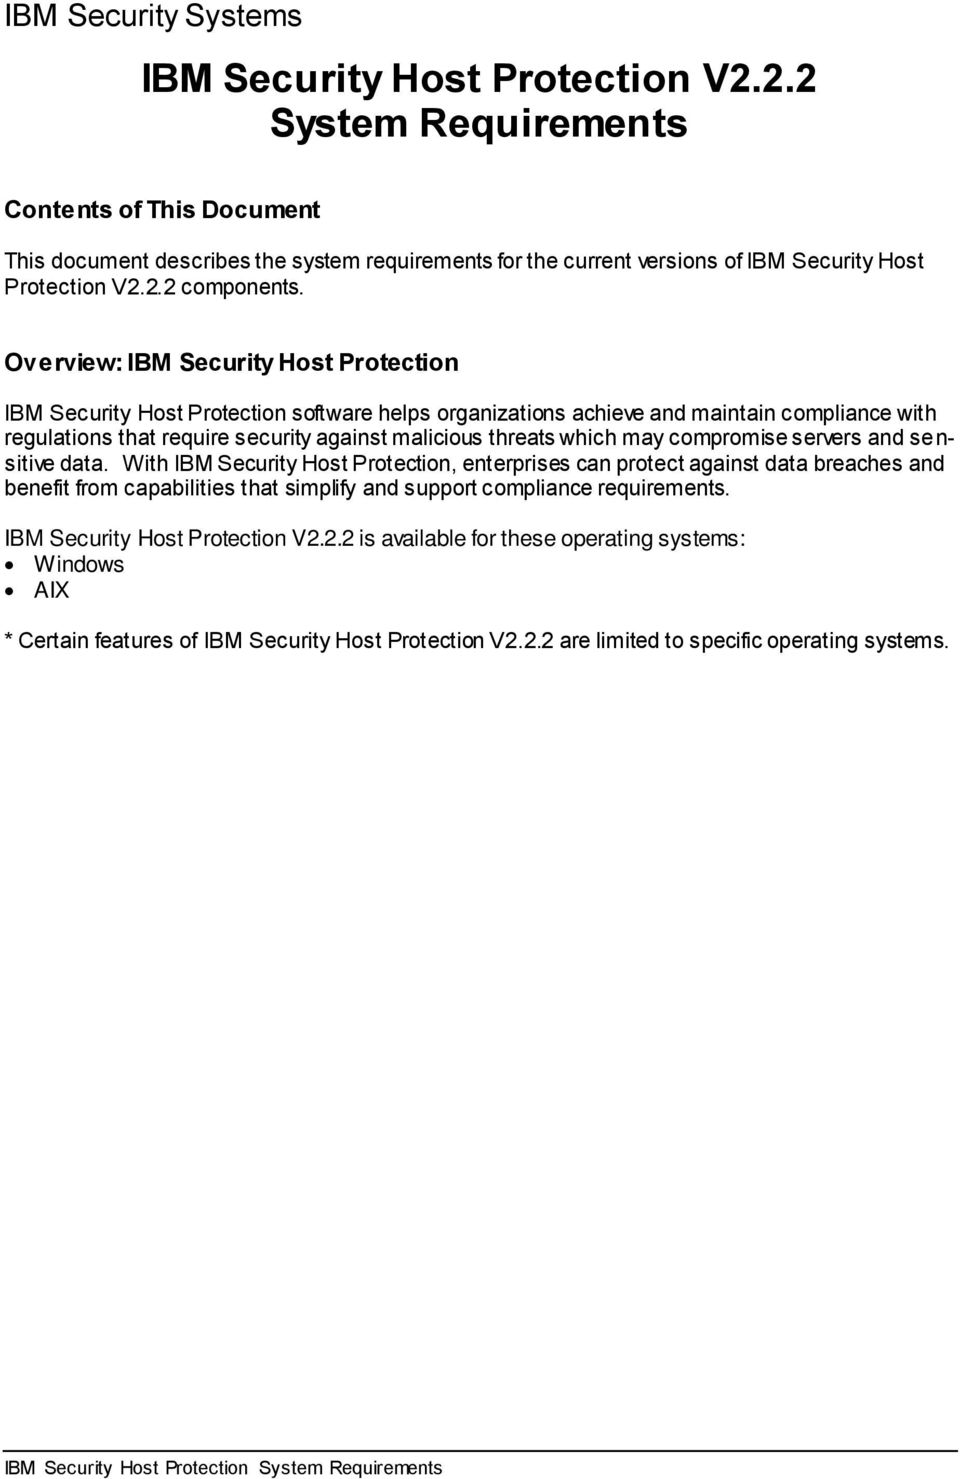 Overview: IBM Security Host Protection IBM Security Host Protection software helps organizations achieve and maintain compliance with regulations that require security against malicious threats which